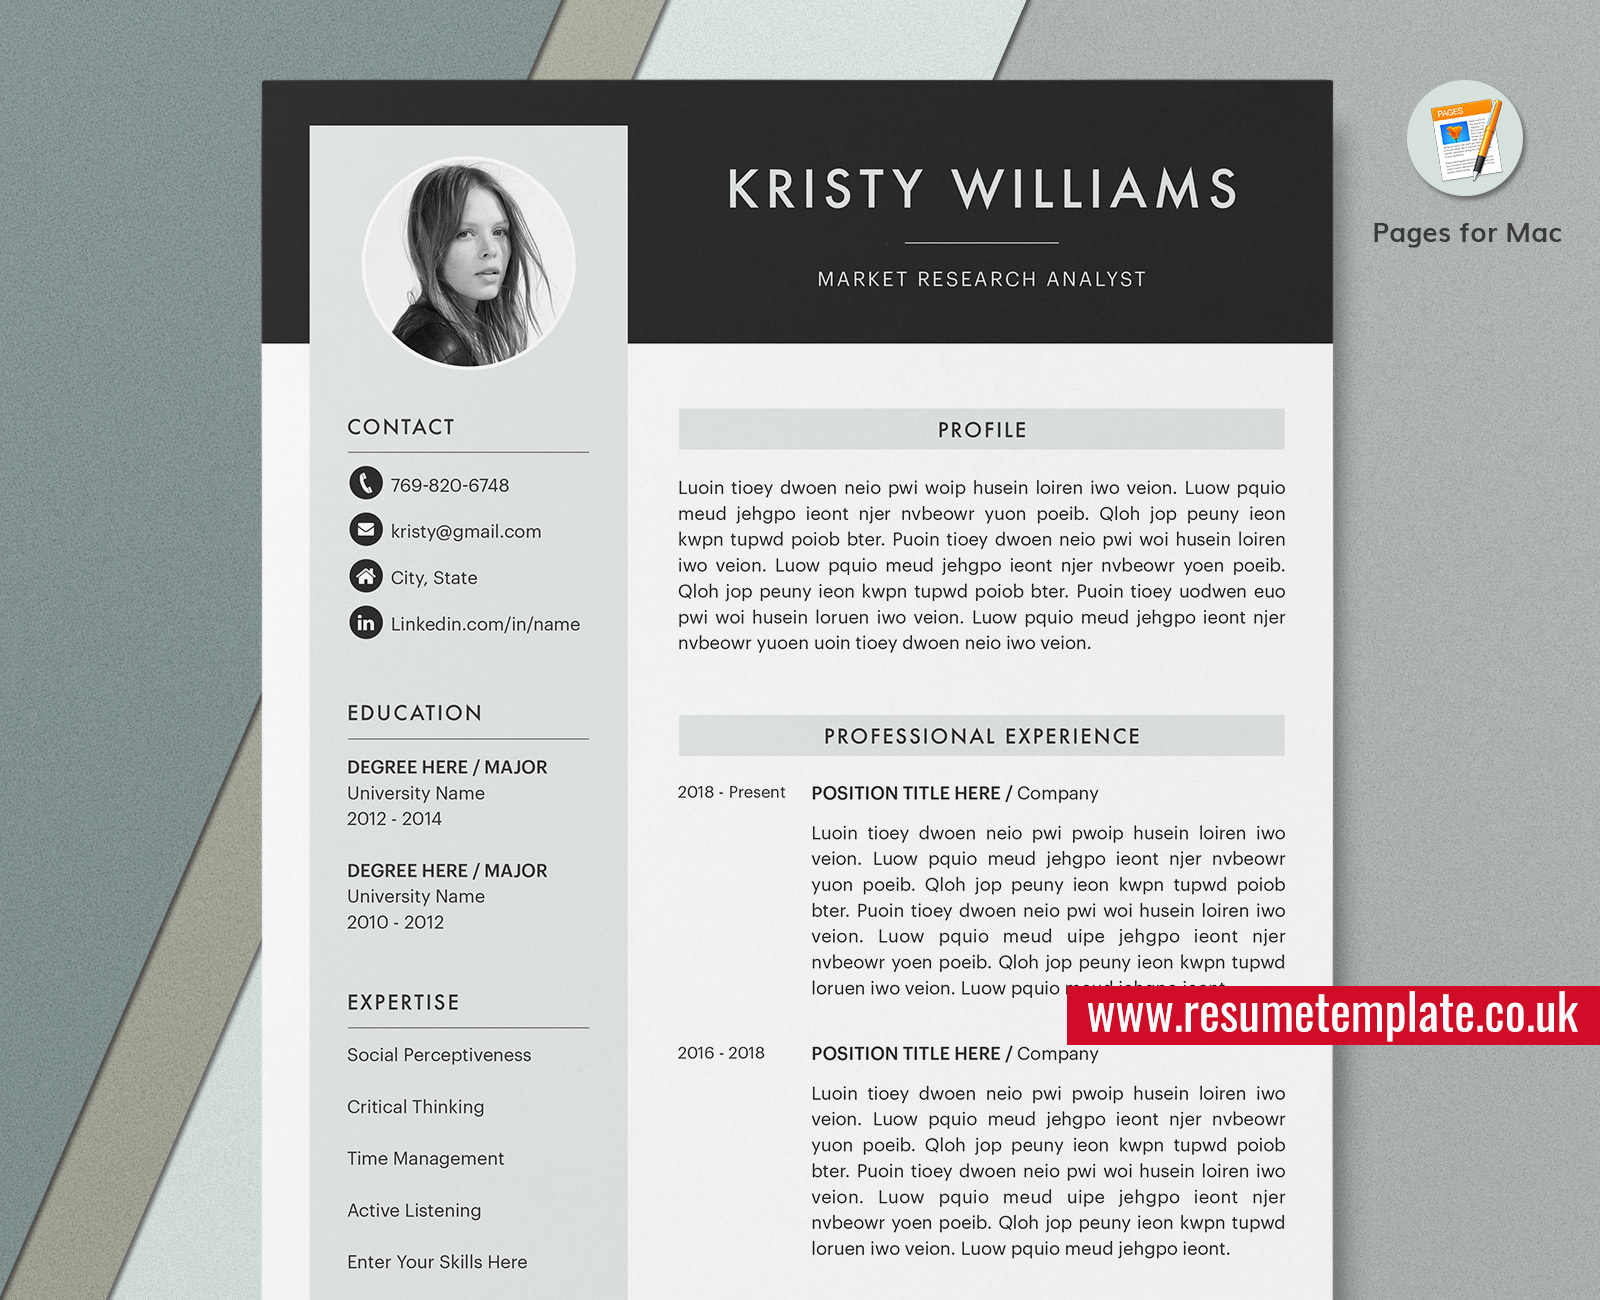 Mac Pages Modern Resume Cv Template Cover Letter Curriculum Vitae 1 4 Page Professional Cv Template Design Creative Resume For Job Application Instant Download Resumetemplate Co Uk